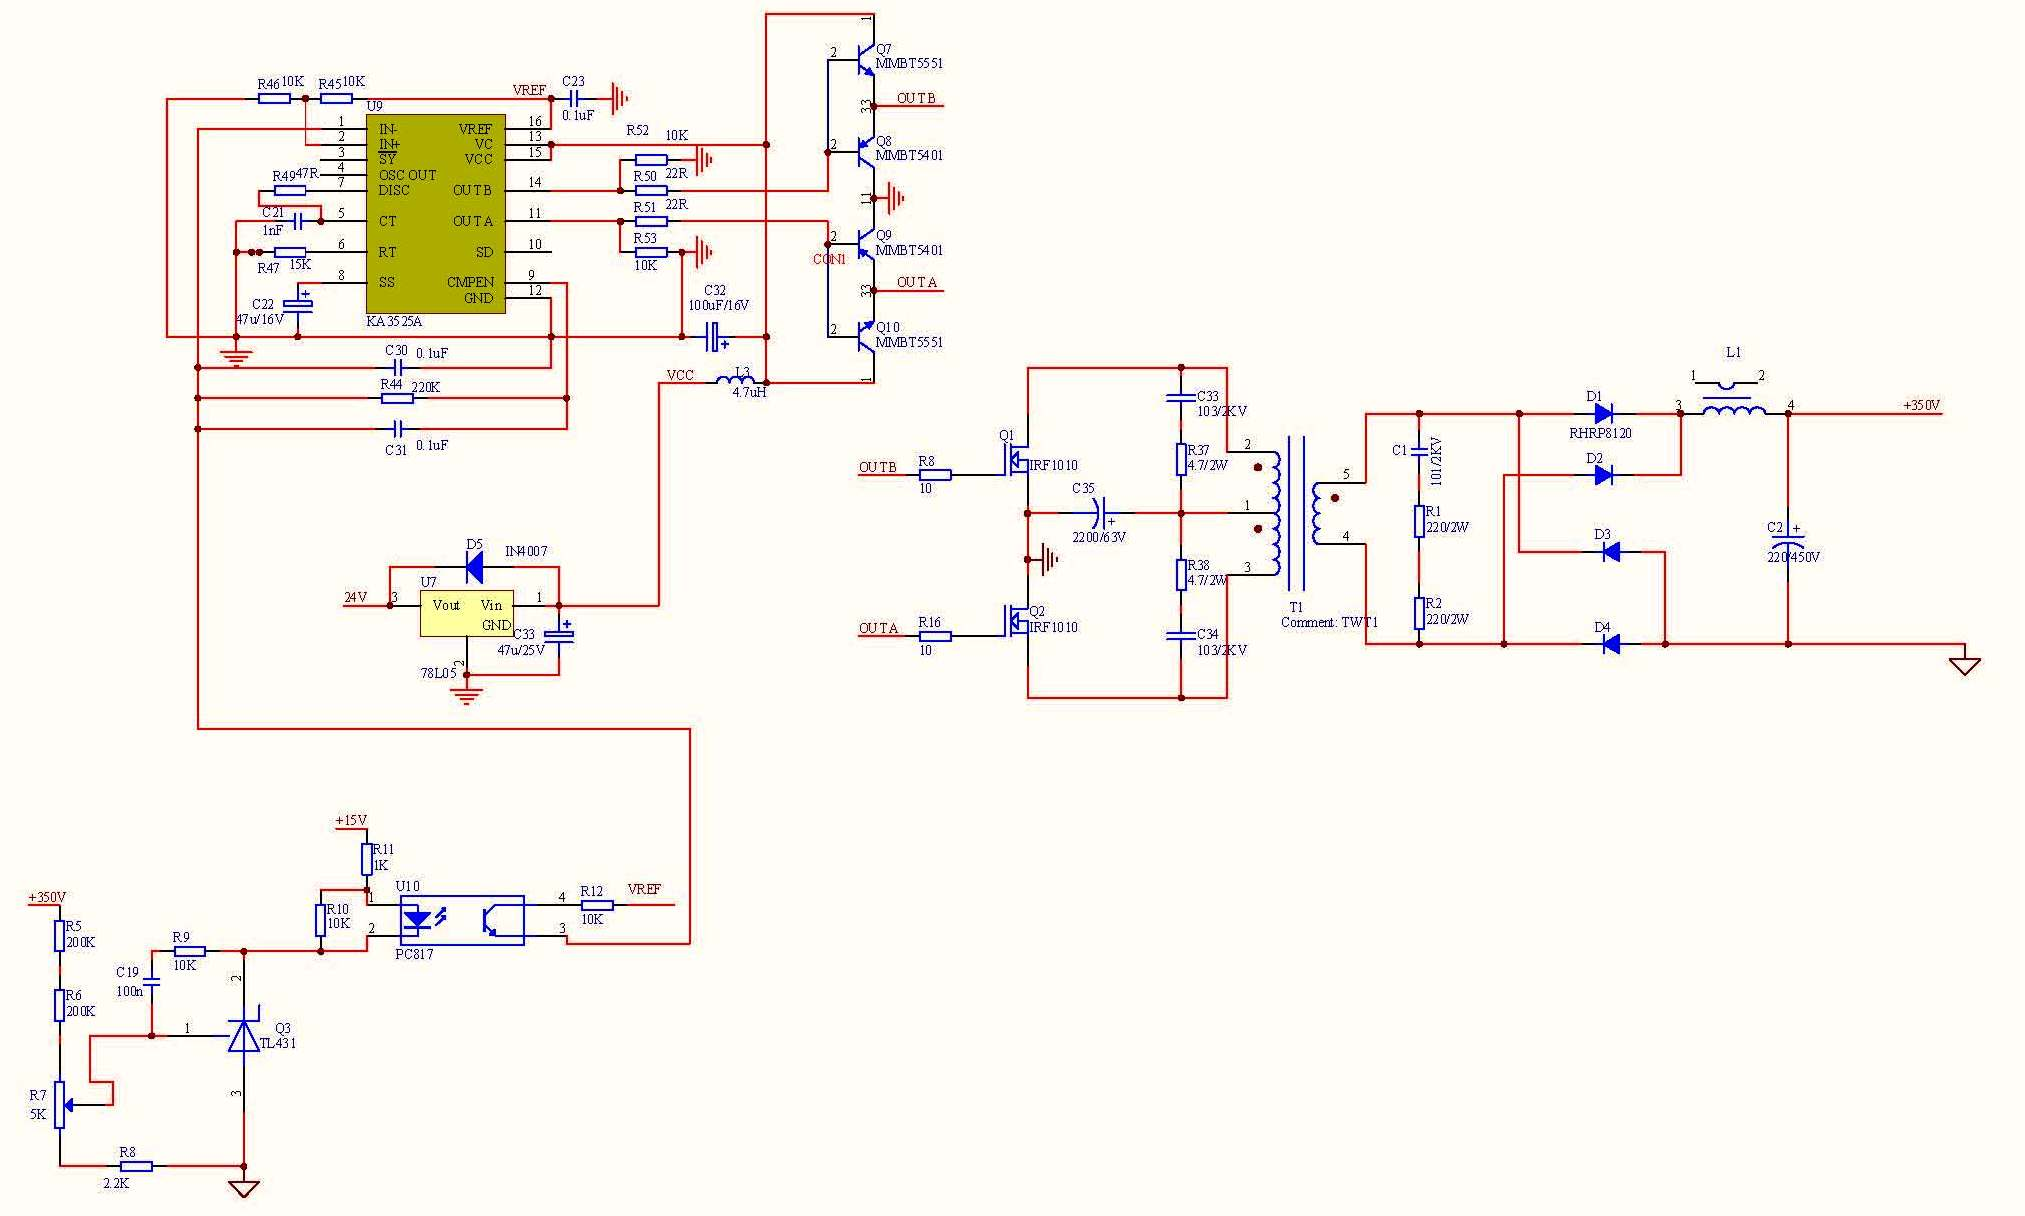 Problem Inverter Dc 12vdc To 320vdc On Images For Using Sg3524 Circuit Diagram Image Hello In Case Of Driver The Bd139 And Bd140 Fets I Envir An